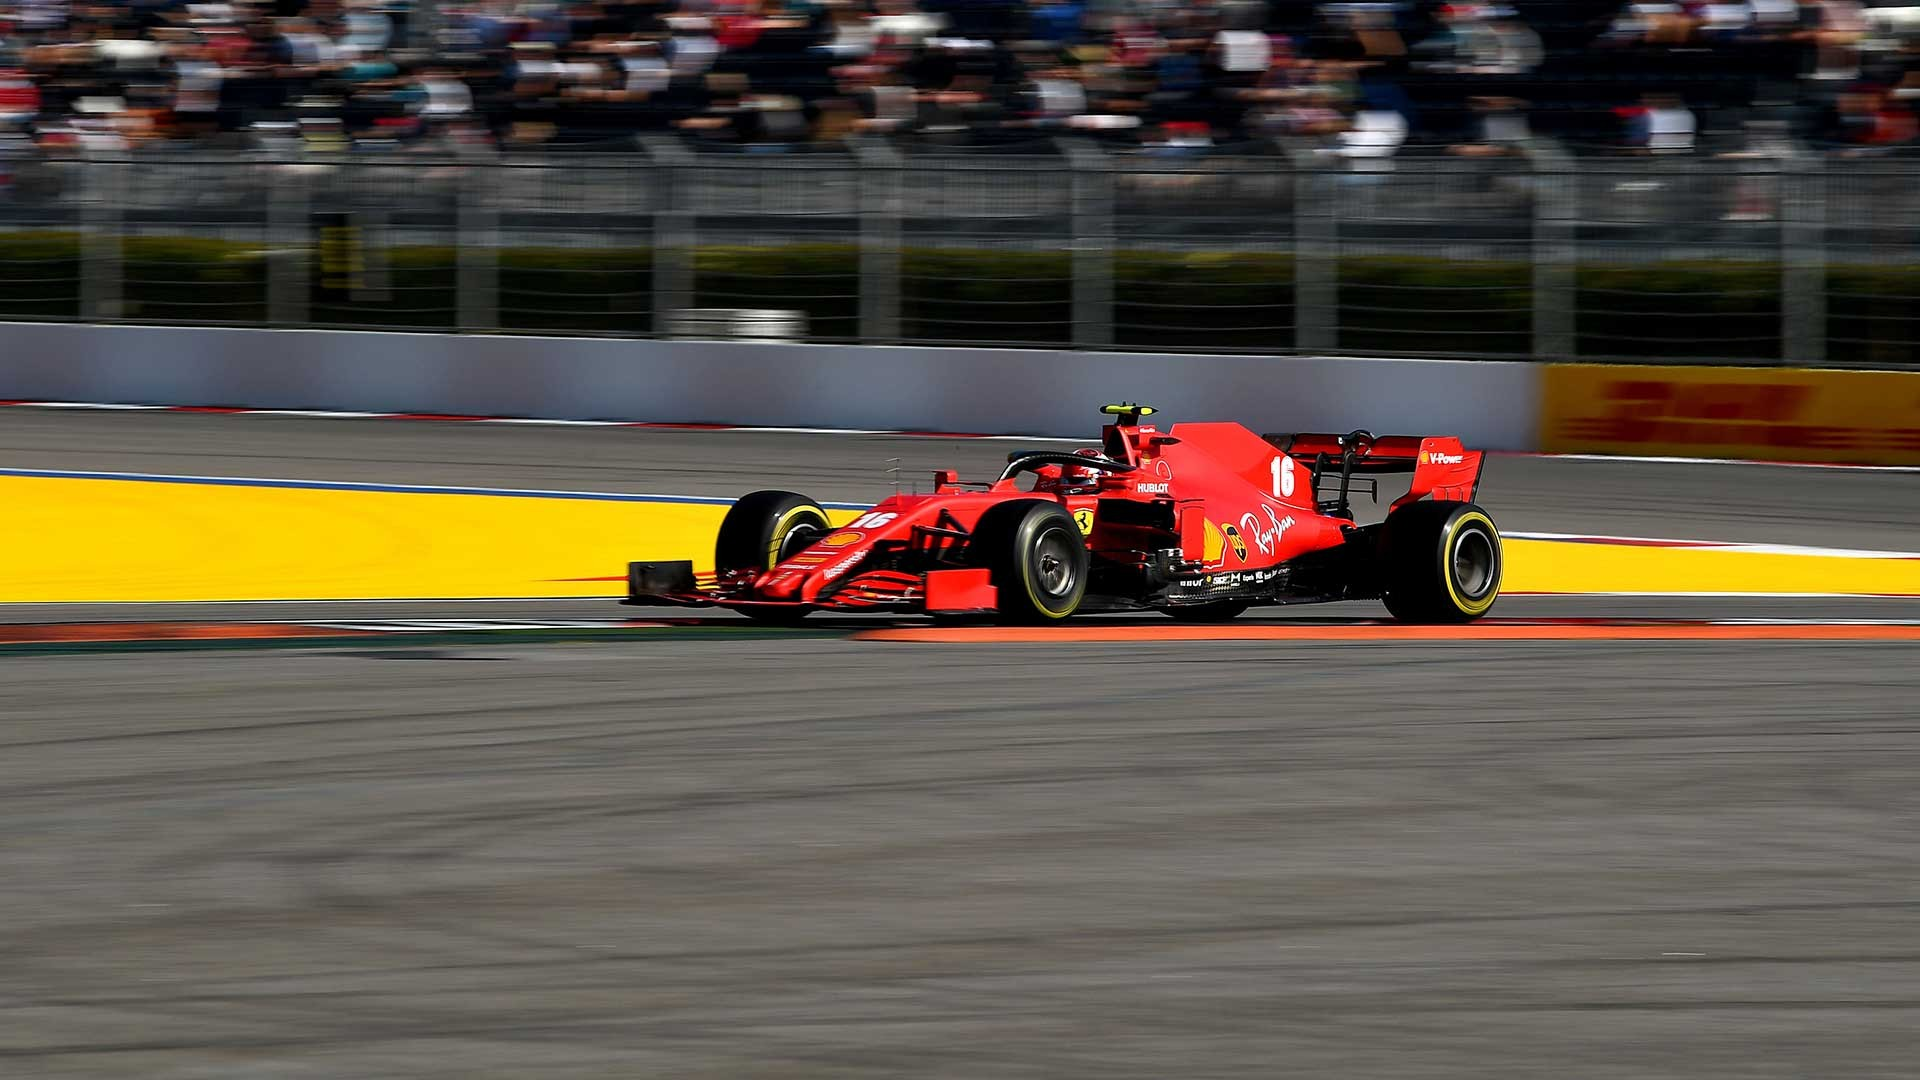 Scuderia Ferrari leaves Sochi with a sixth place courtesy of Charles Leclerc and a 13th with Sebastian Vettel, after a relatively straightforward race, apart from two incidents on the opening lap that brought out the Safety Car.